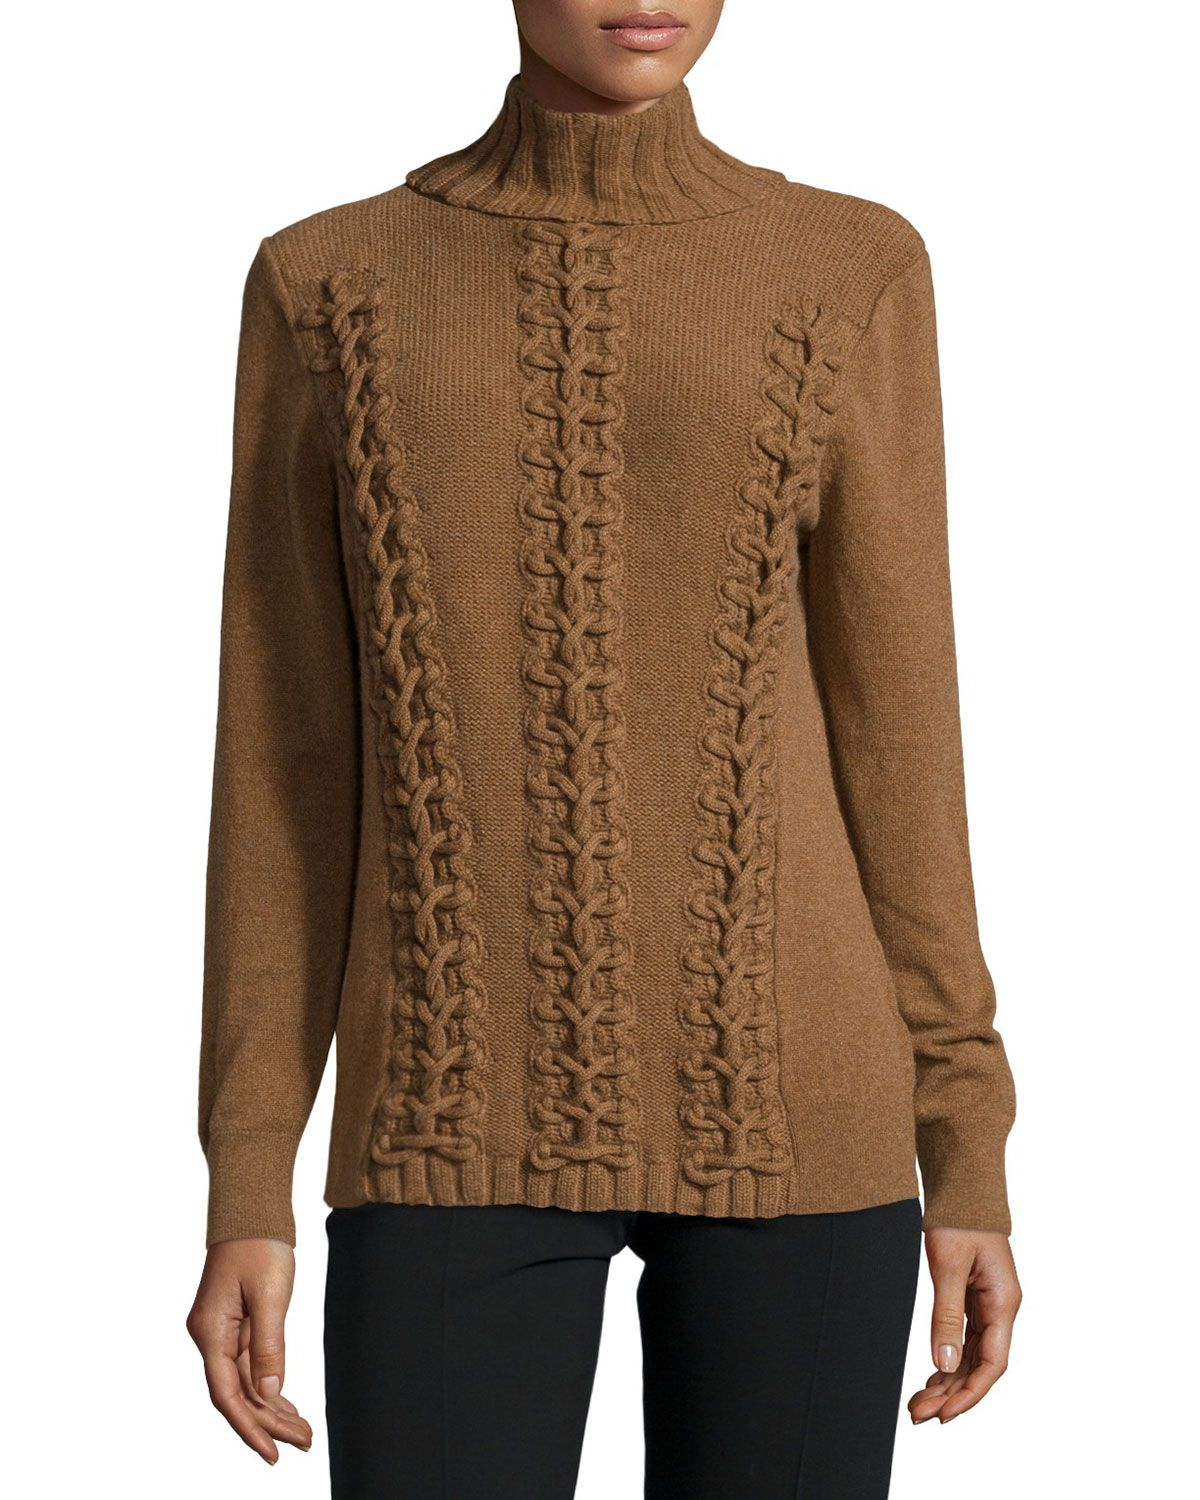 Lafayette 148 New York Long-Sleeve Cable-Knit Cashmere Sweater, Coconut Melange